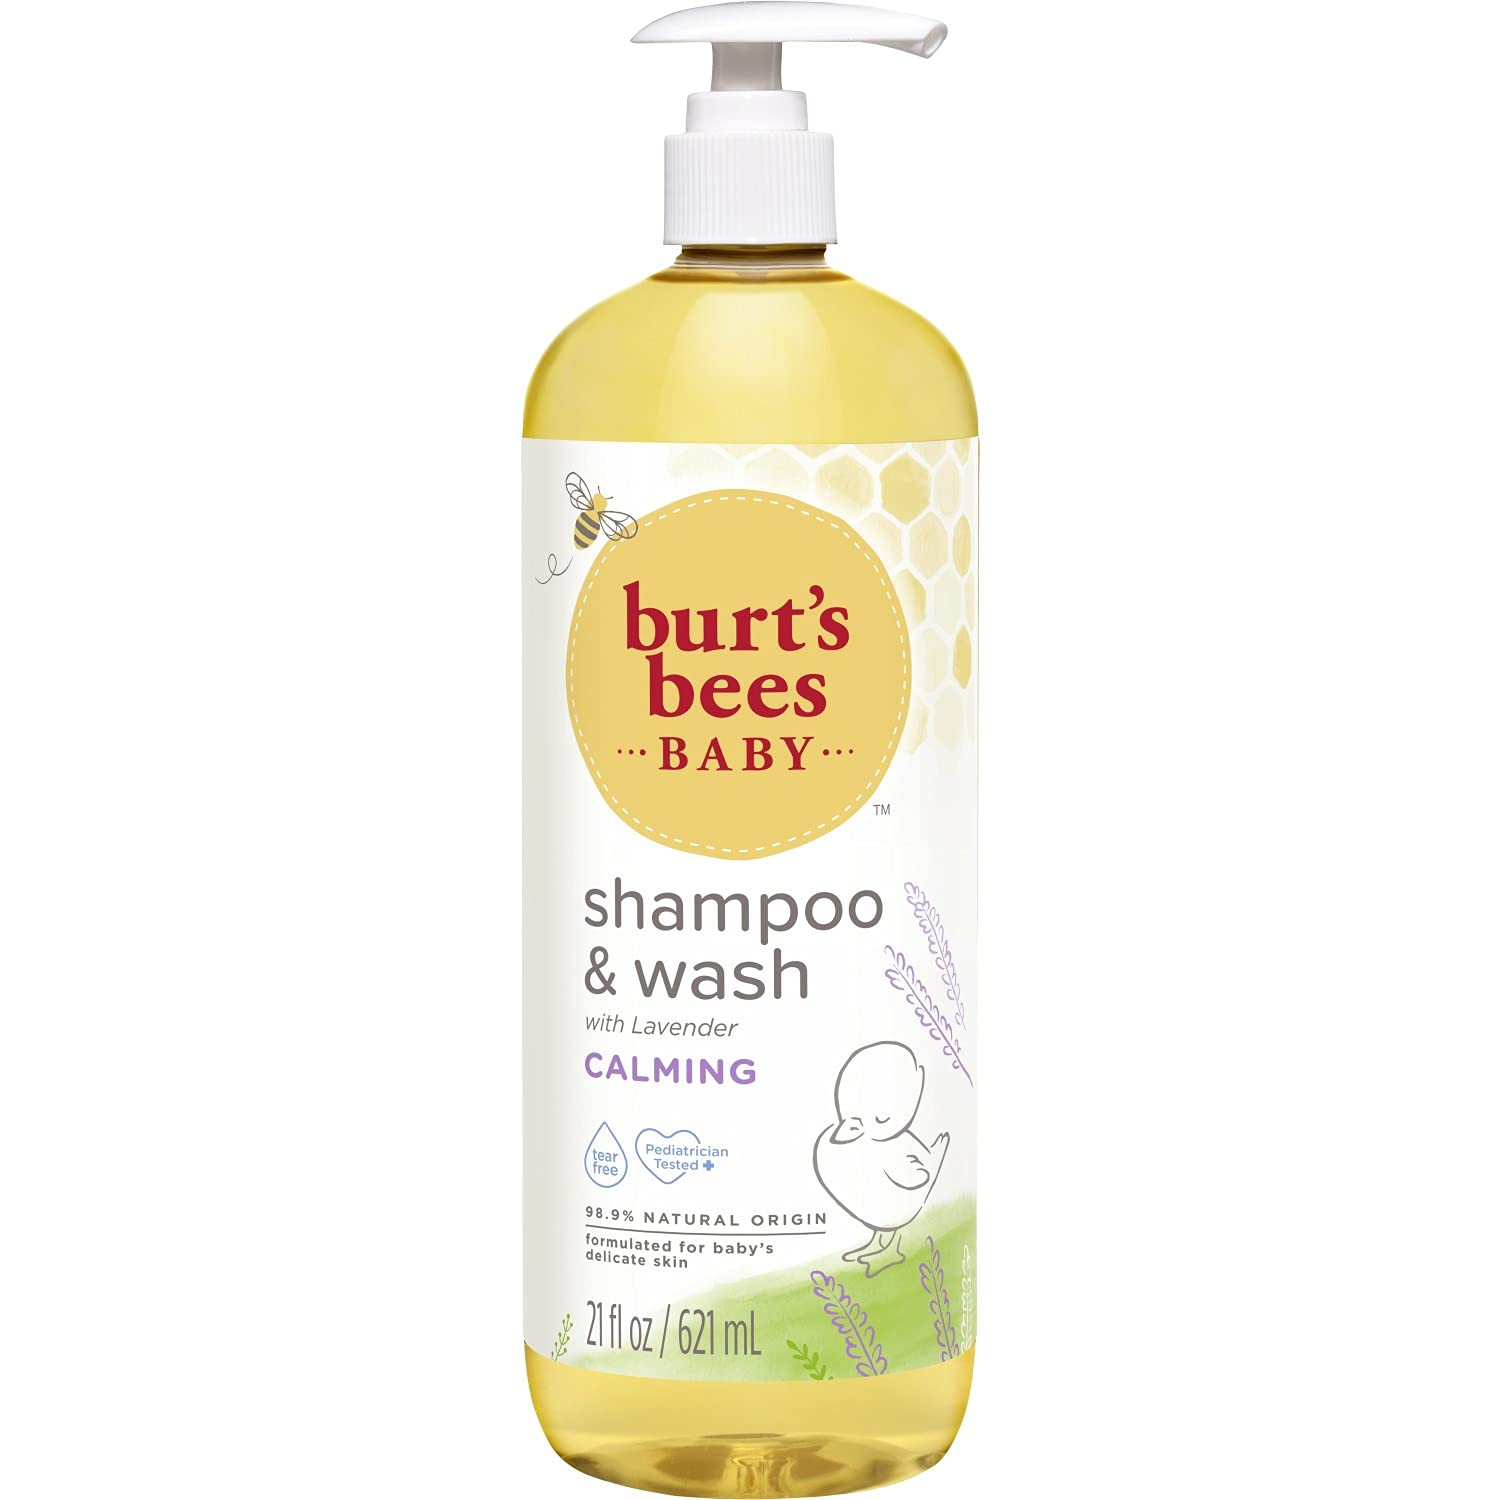 Burt's Bees Baby Calming Shampoo Sales of SALE items from new works and Tear-Fr Lavender with Portland Mall Wash